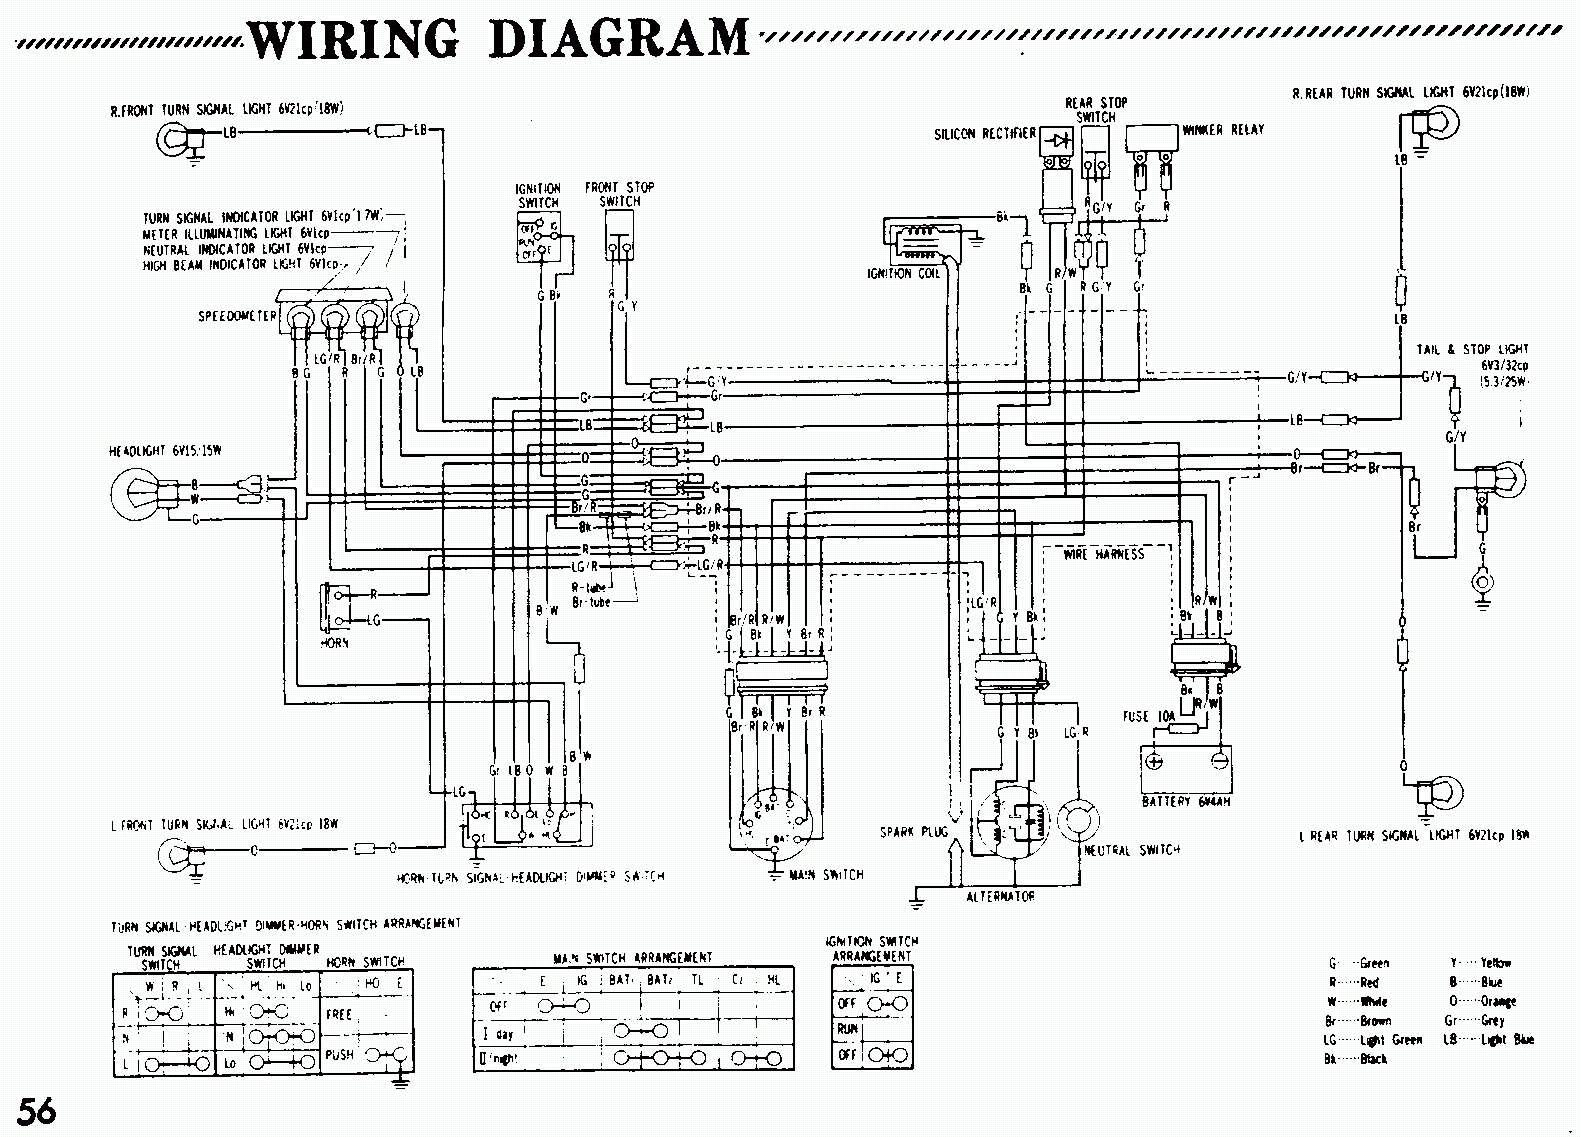 [TBQL_4184]  E95 Skyteam 125cc Dirt Bike Wiring Diagram | Wiring Resources | 1151 Superwinch Solenoid Wiring Diagram |  | Wiring Resources